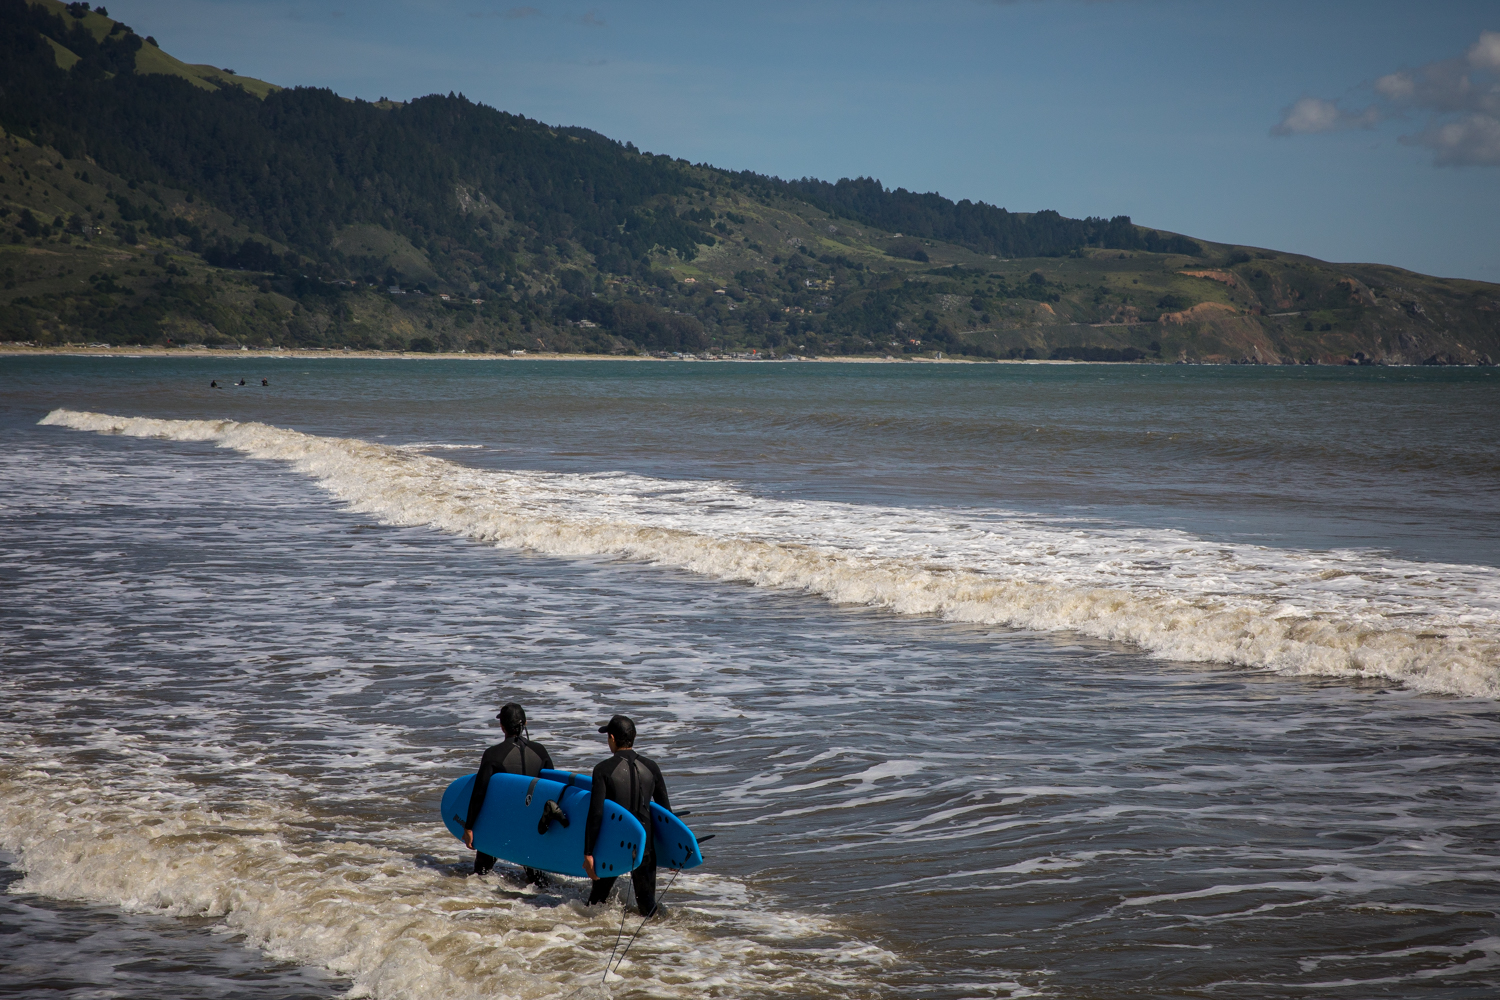 Surfers in Bolinas